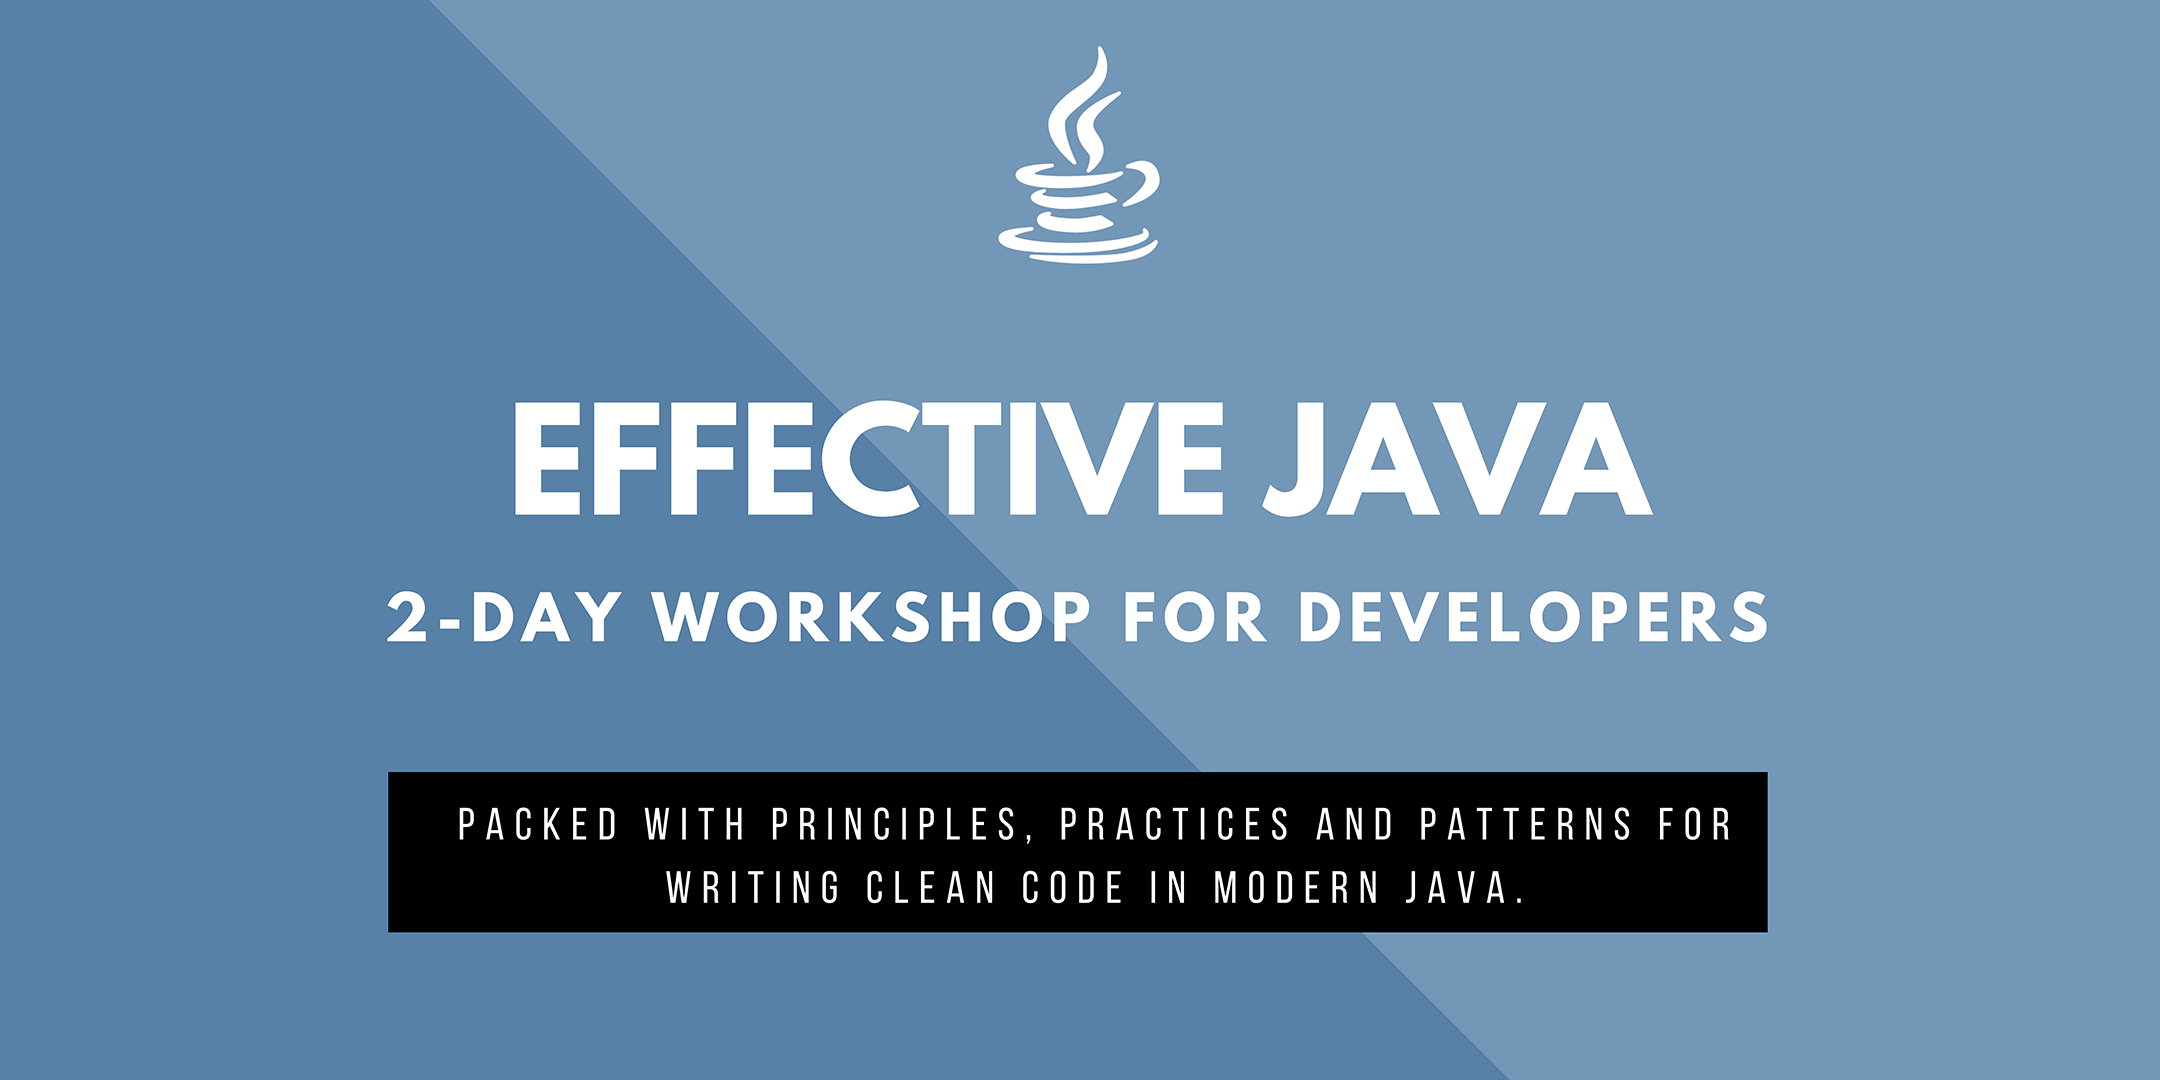 ❗TOP❗ Effective Java 10 for Developers (Cork)